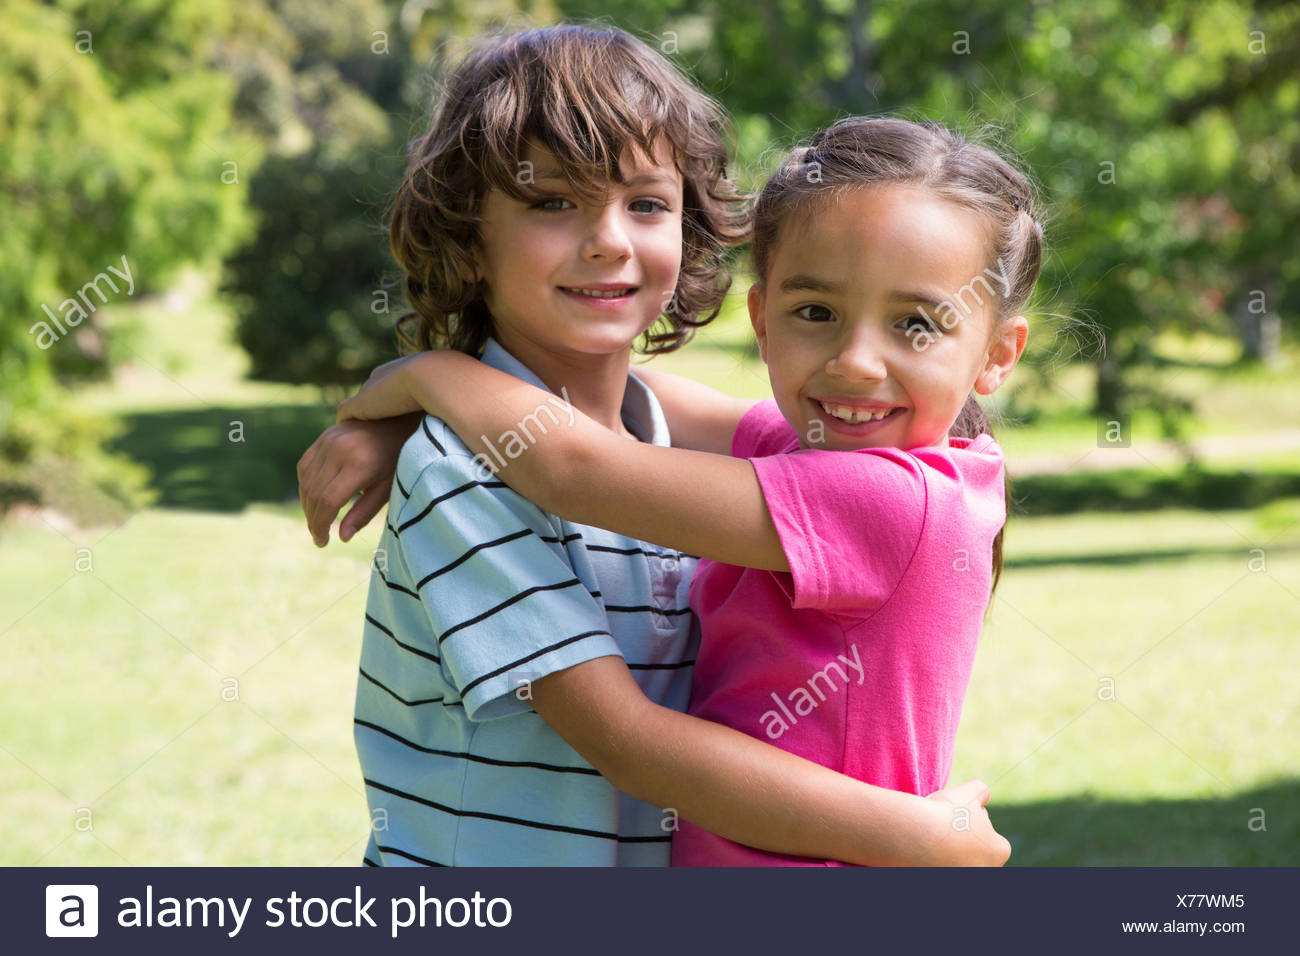 little siblings hugging each other stock photo 279842309 alamy